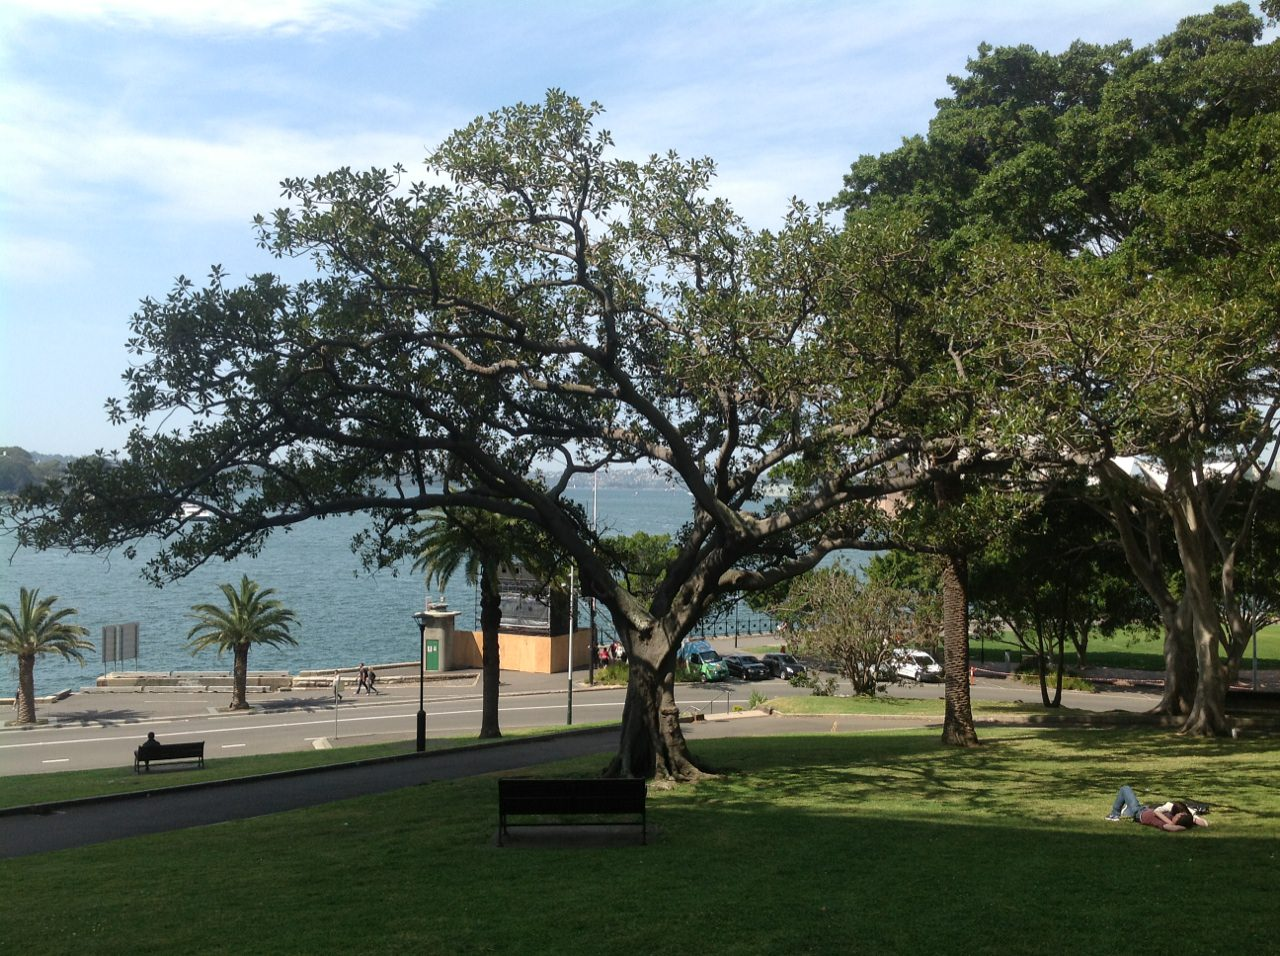 Moreton Bay Fig and Hills Figs